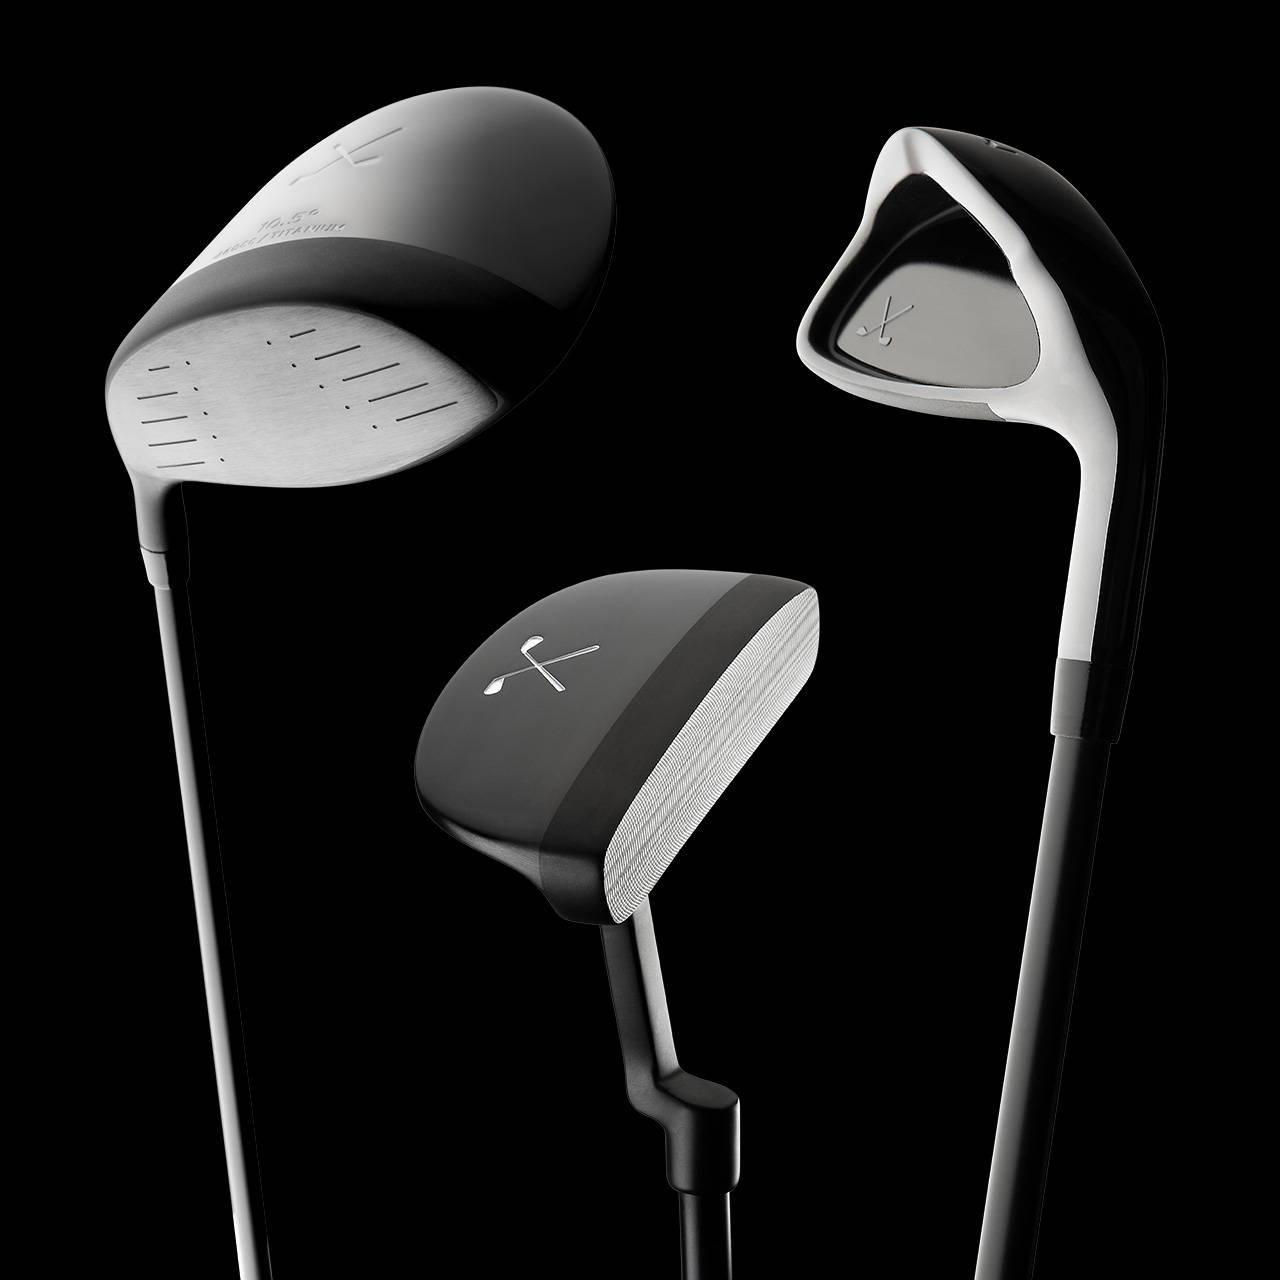 Stix Golf - All Black Golf Clubs